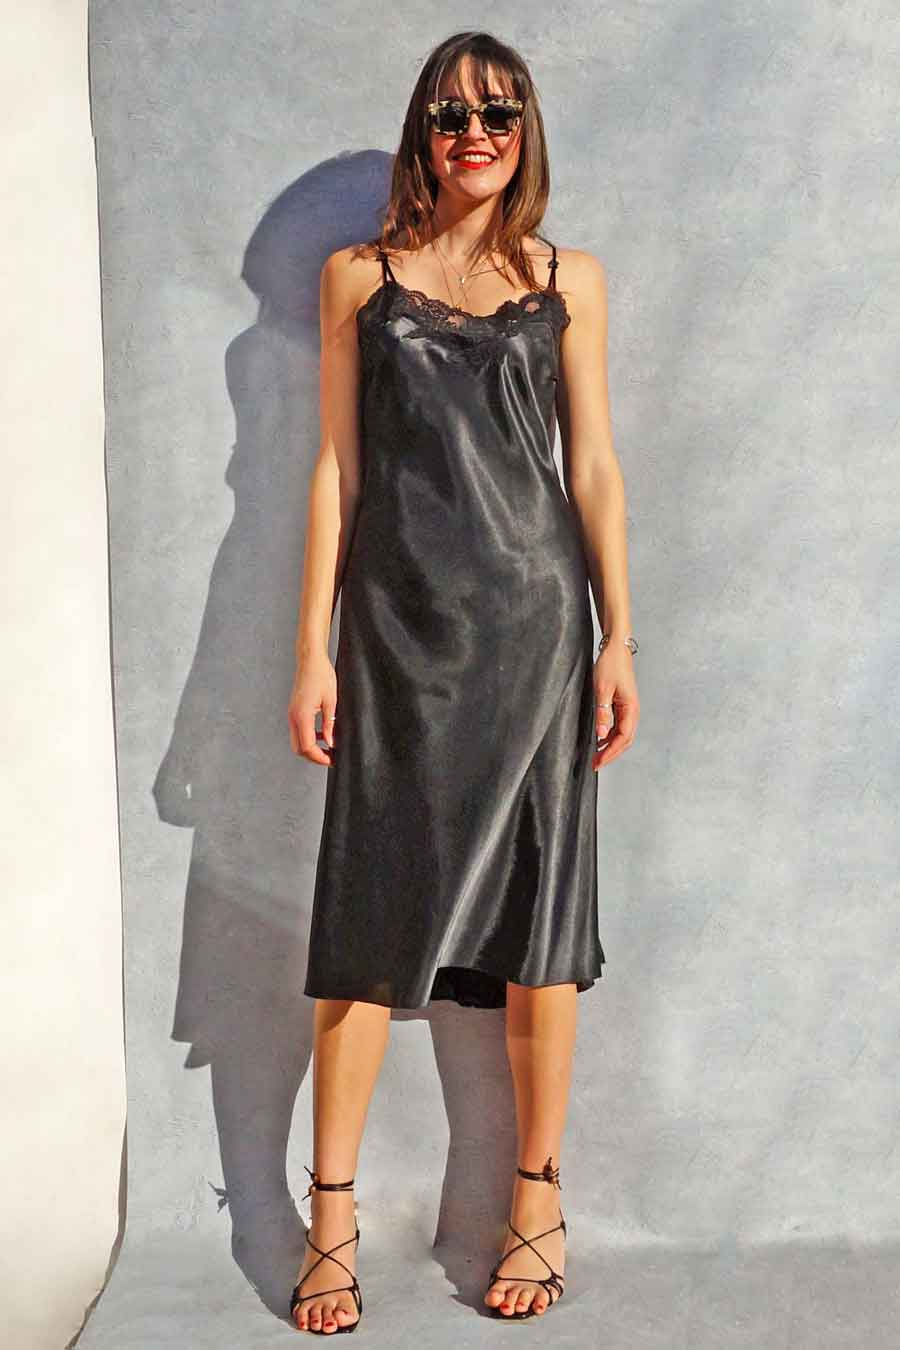 Vintage 90s Black Satin Slip Dress - vintage lingerie - ada's attic vintage